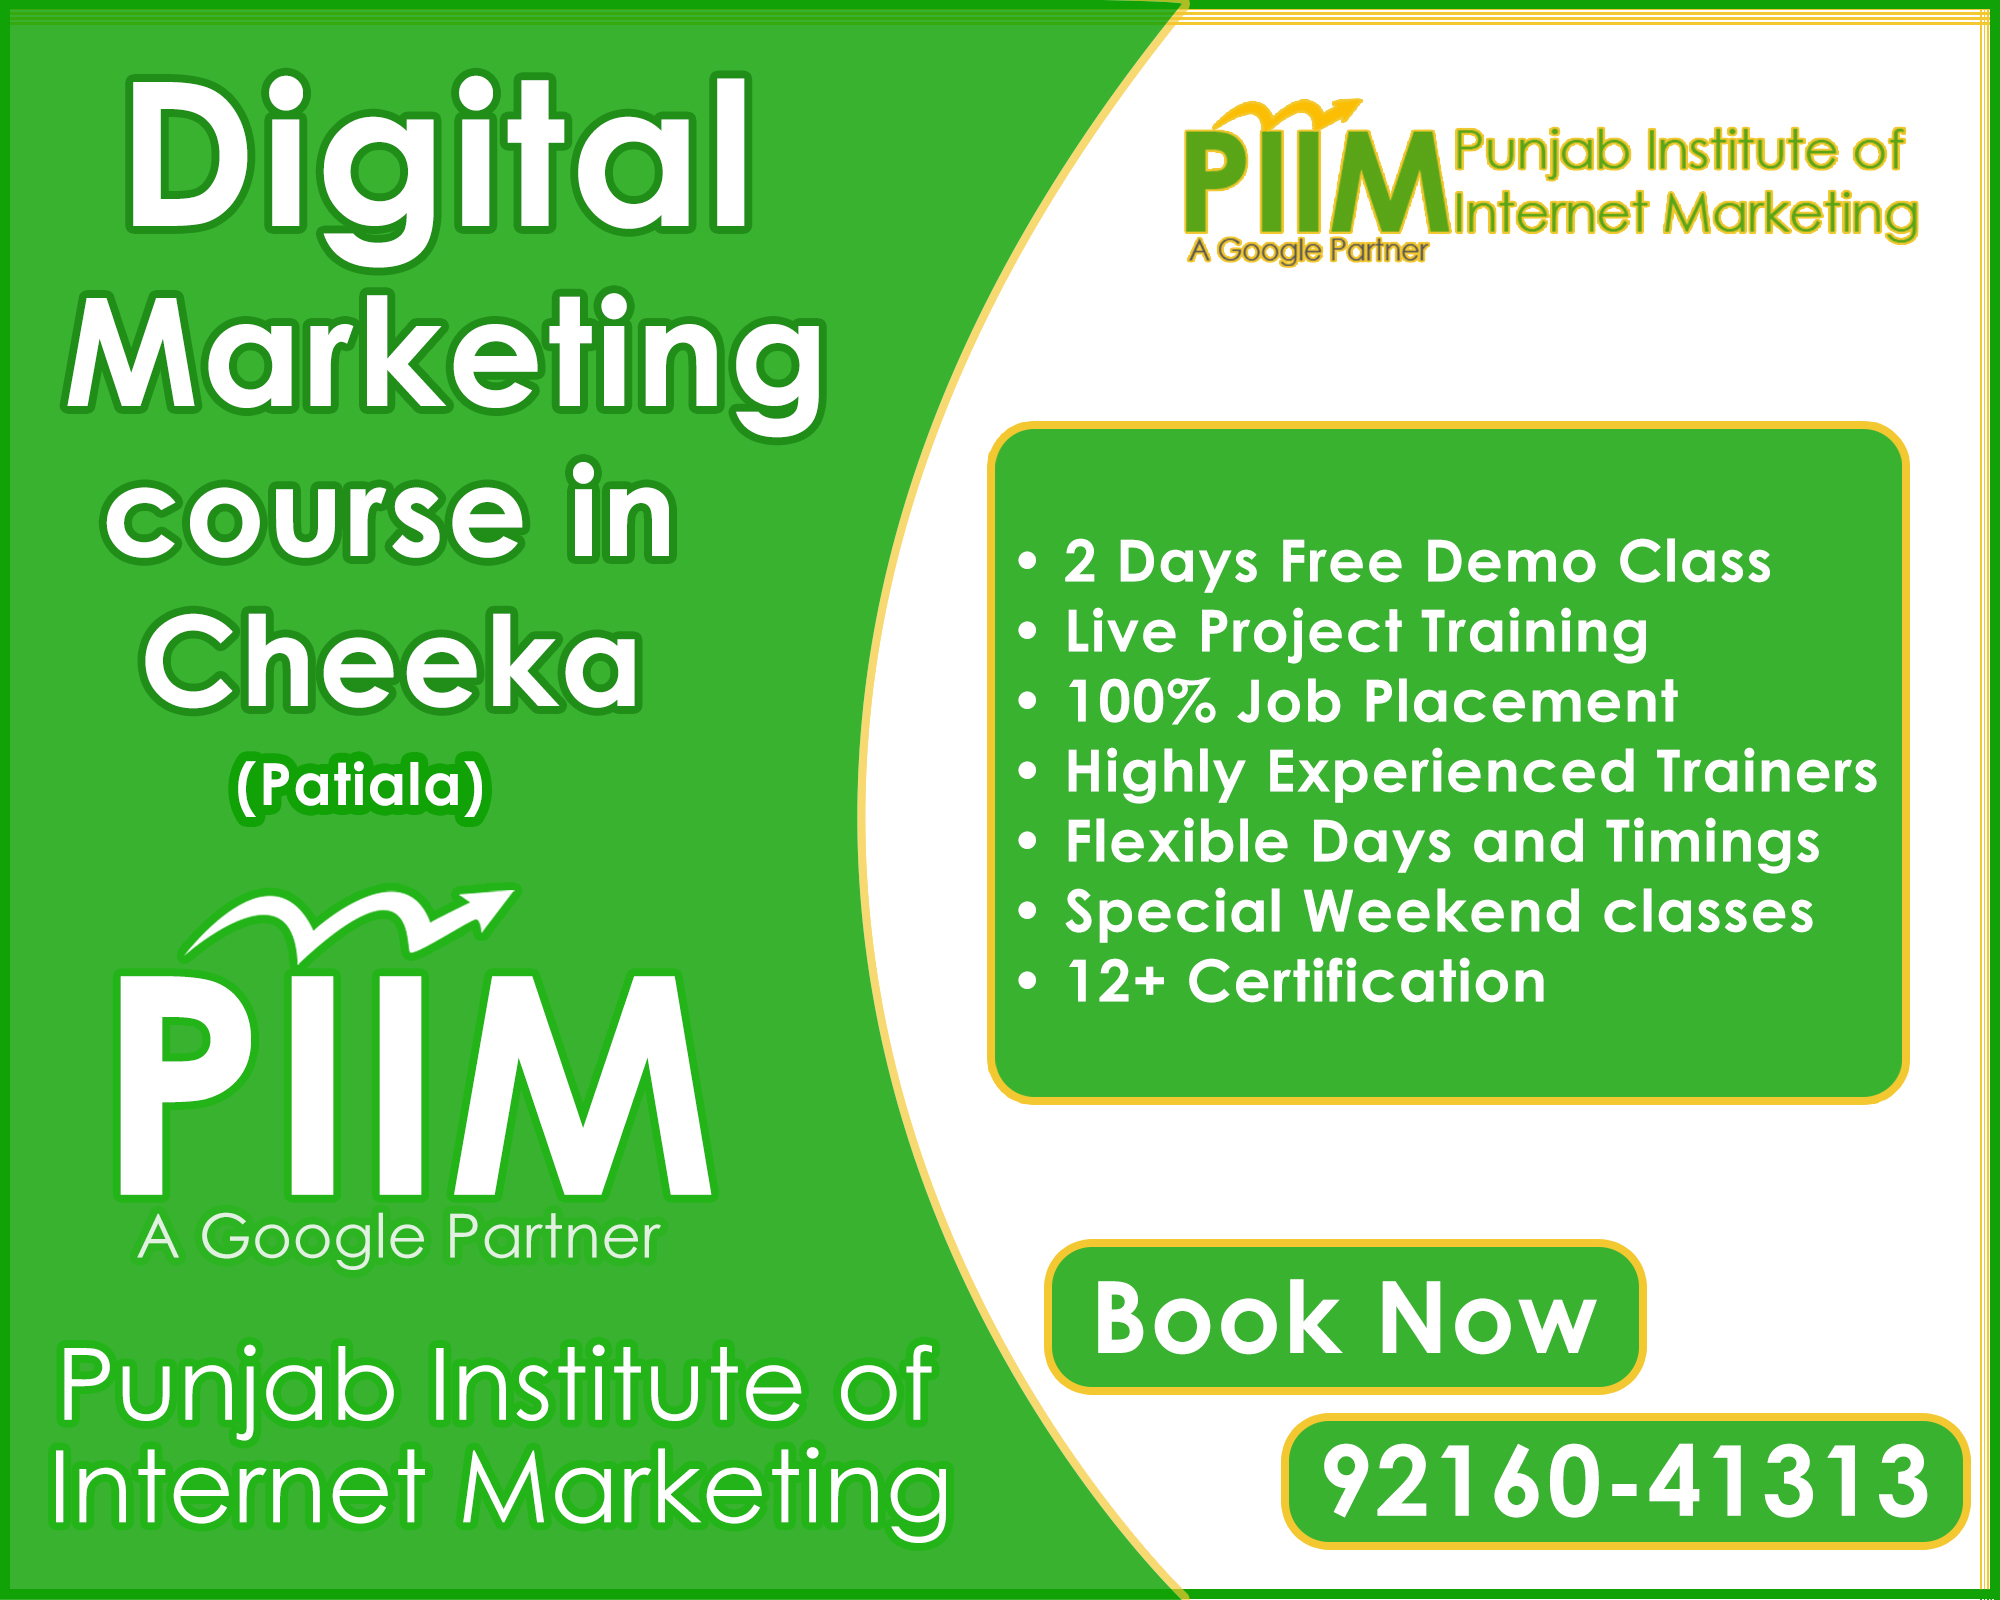 Digital Marketing Course in Cheeka